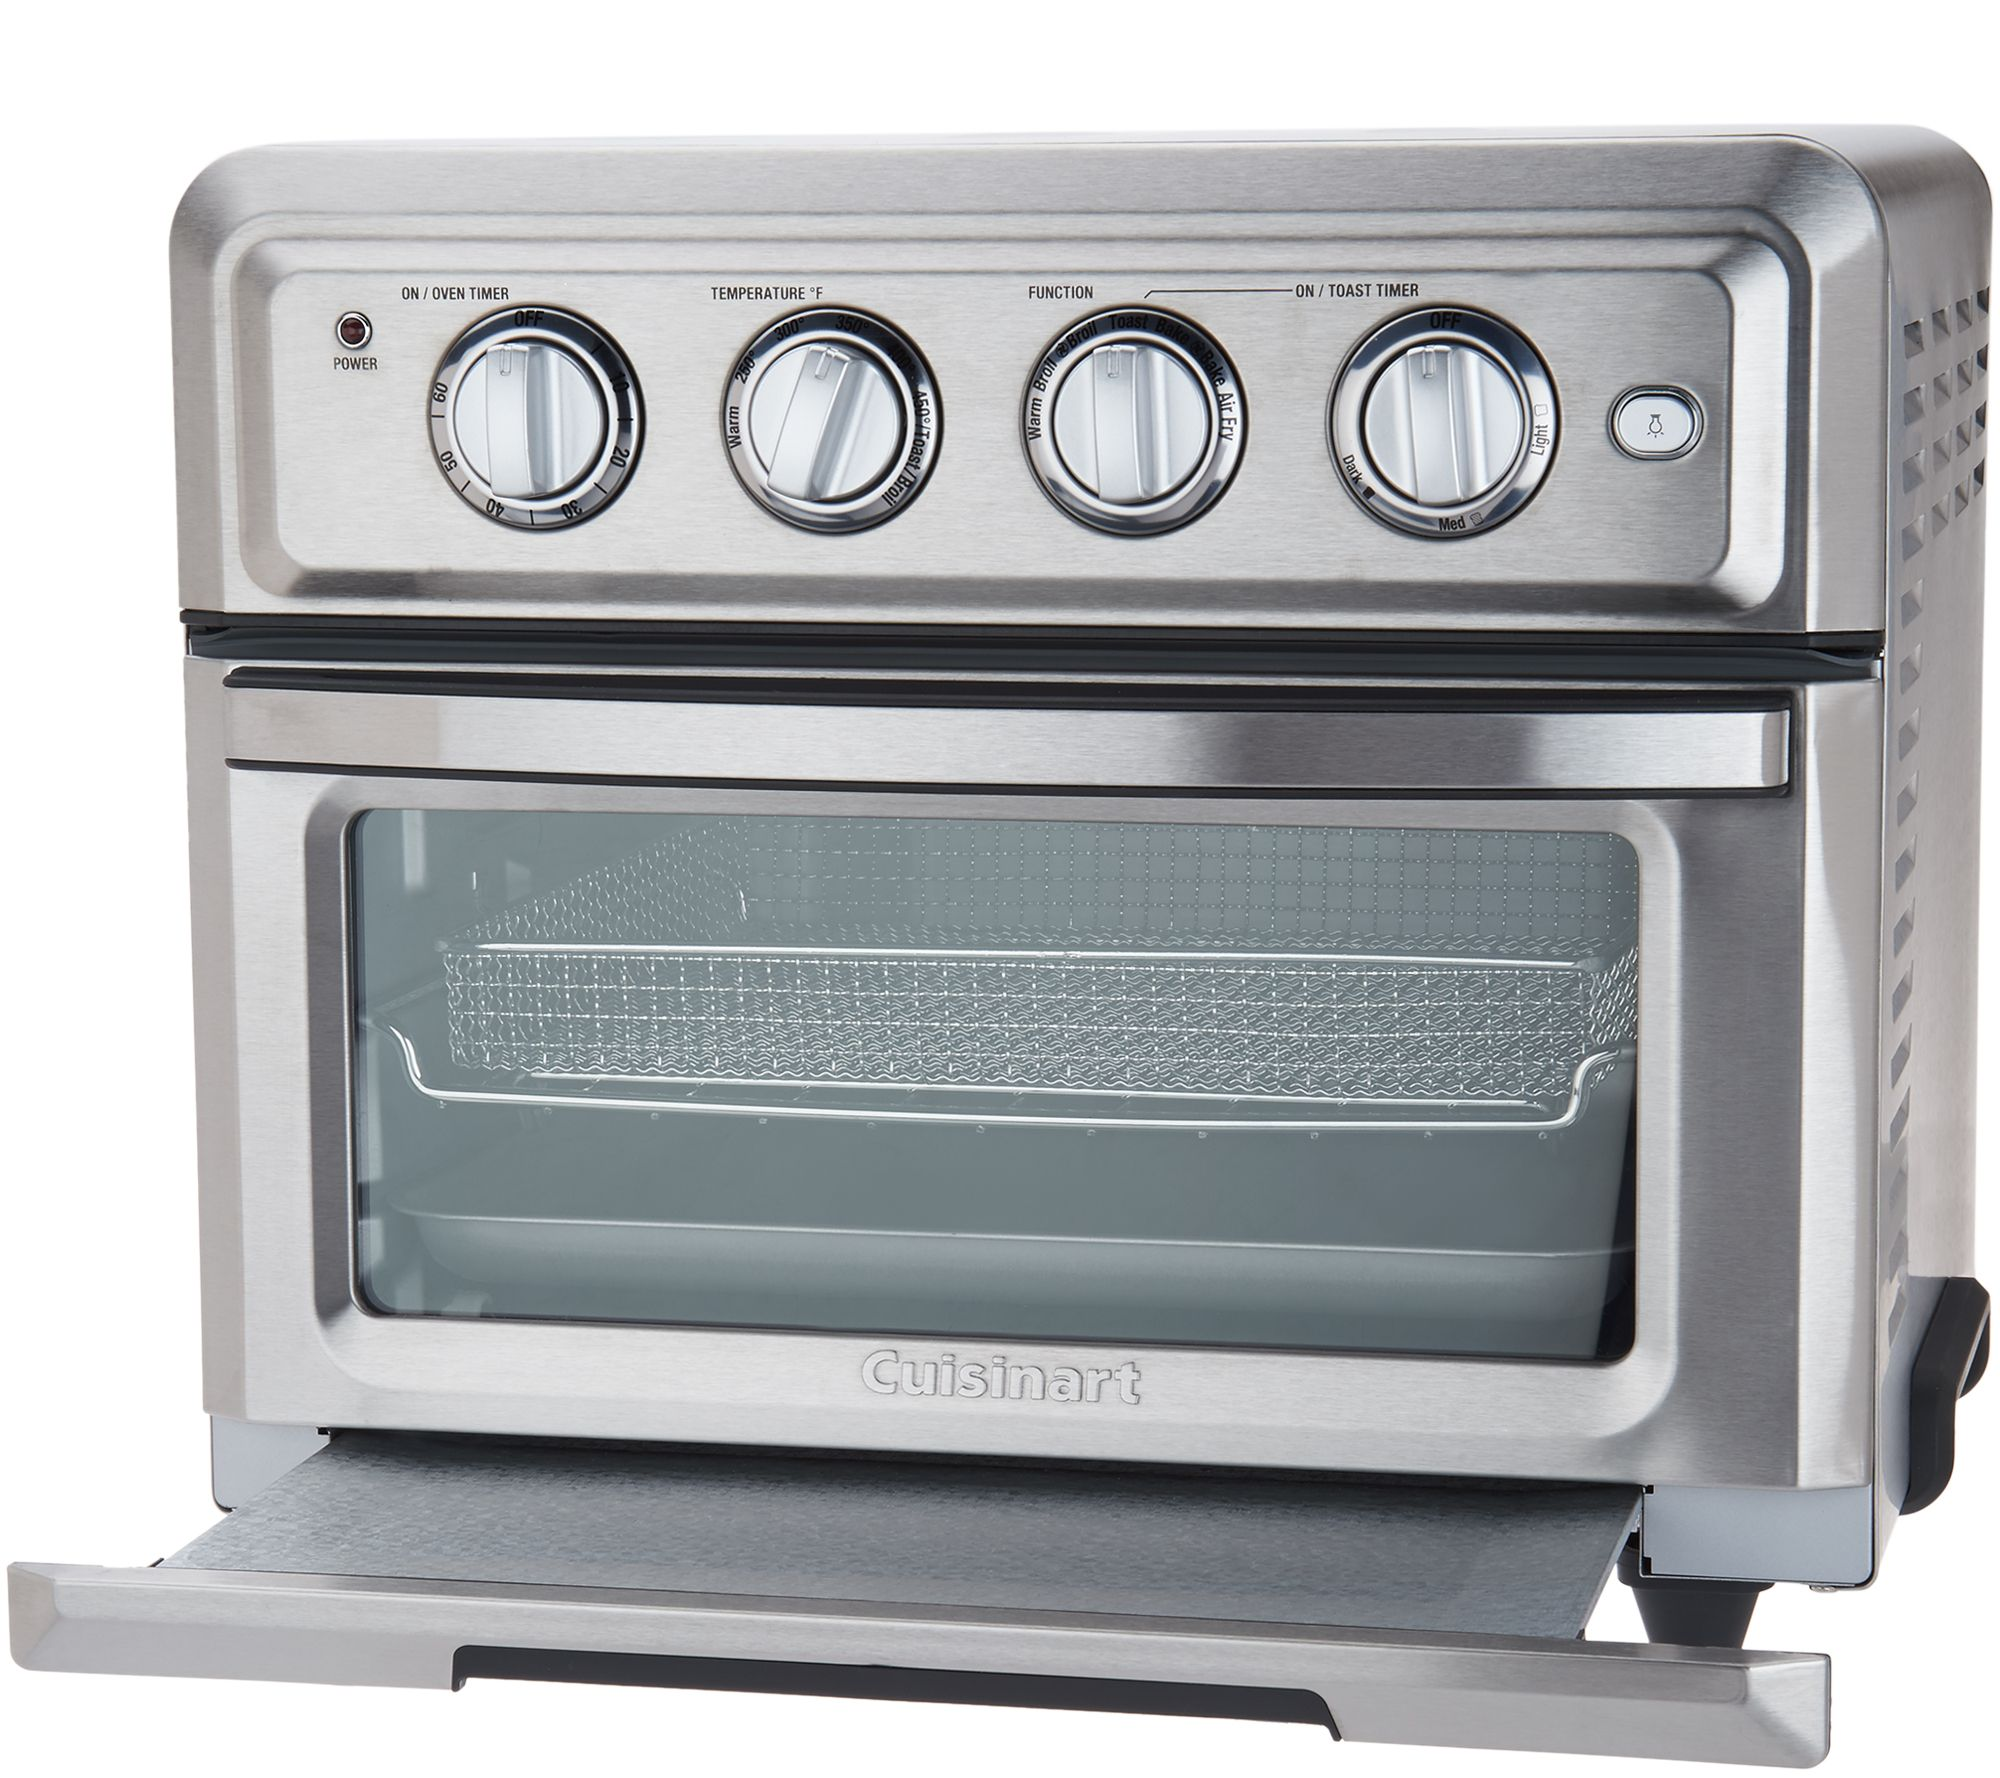 Cuisinart Convection Toaster Oven Air Fryer with Light - Page 1 ...